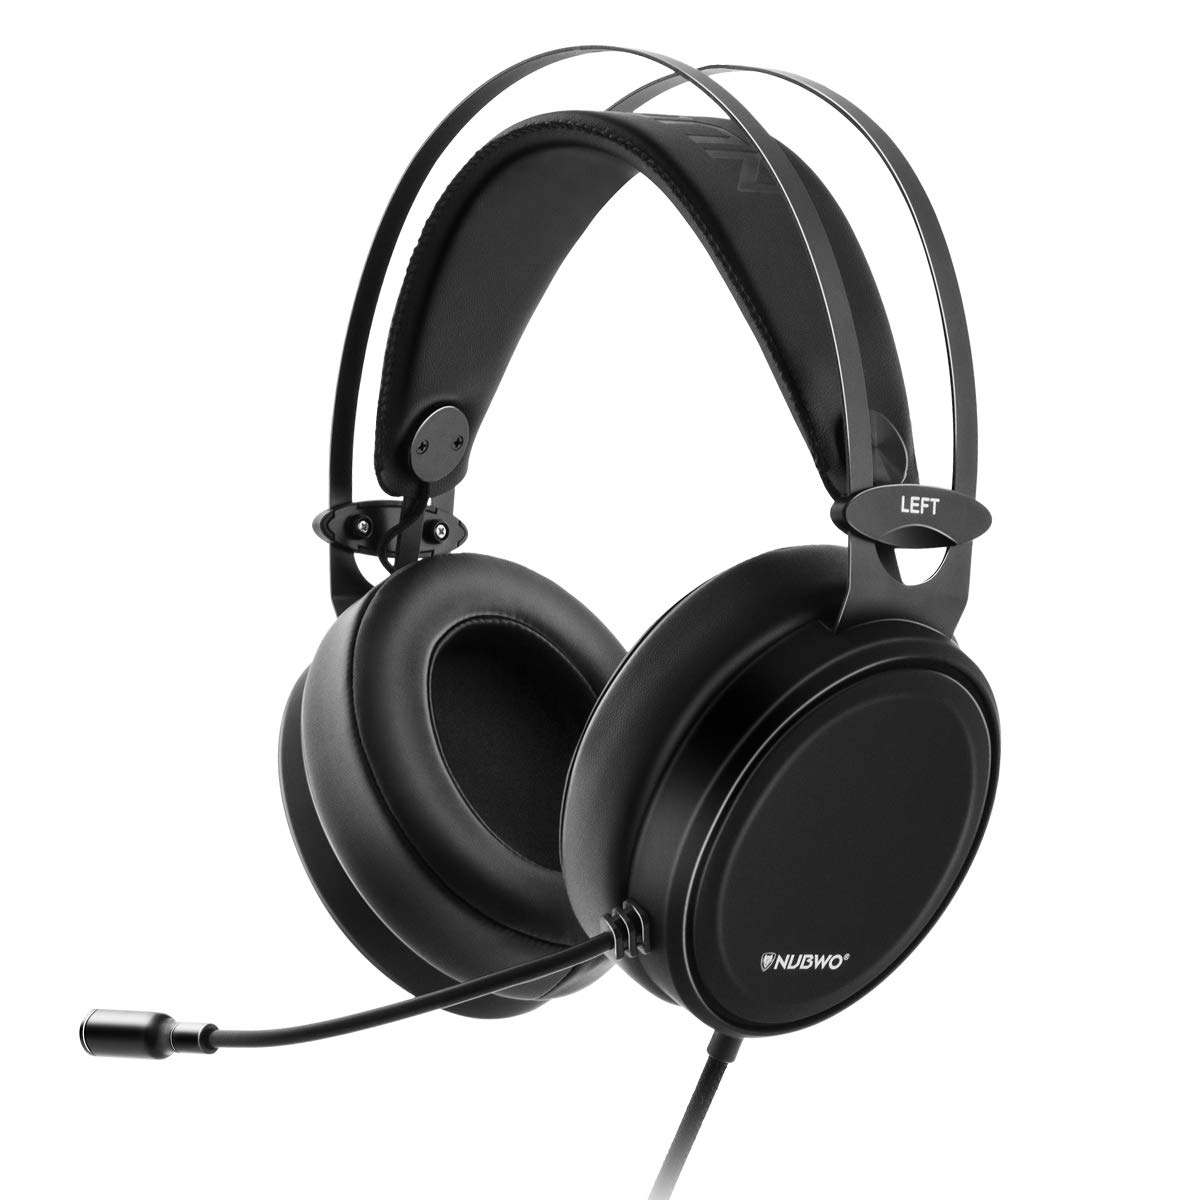 LUPSAN Gaming Headset for Xbox one PS4 Controller, PC Mic Stereo Gamer Headphones with Microphone Computer Nintendo Switch Playstation 4 PRO Xbox 1 x Games